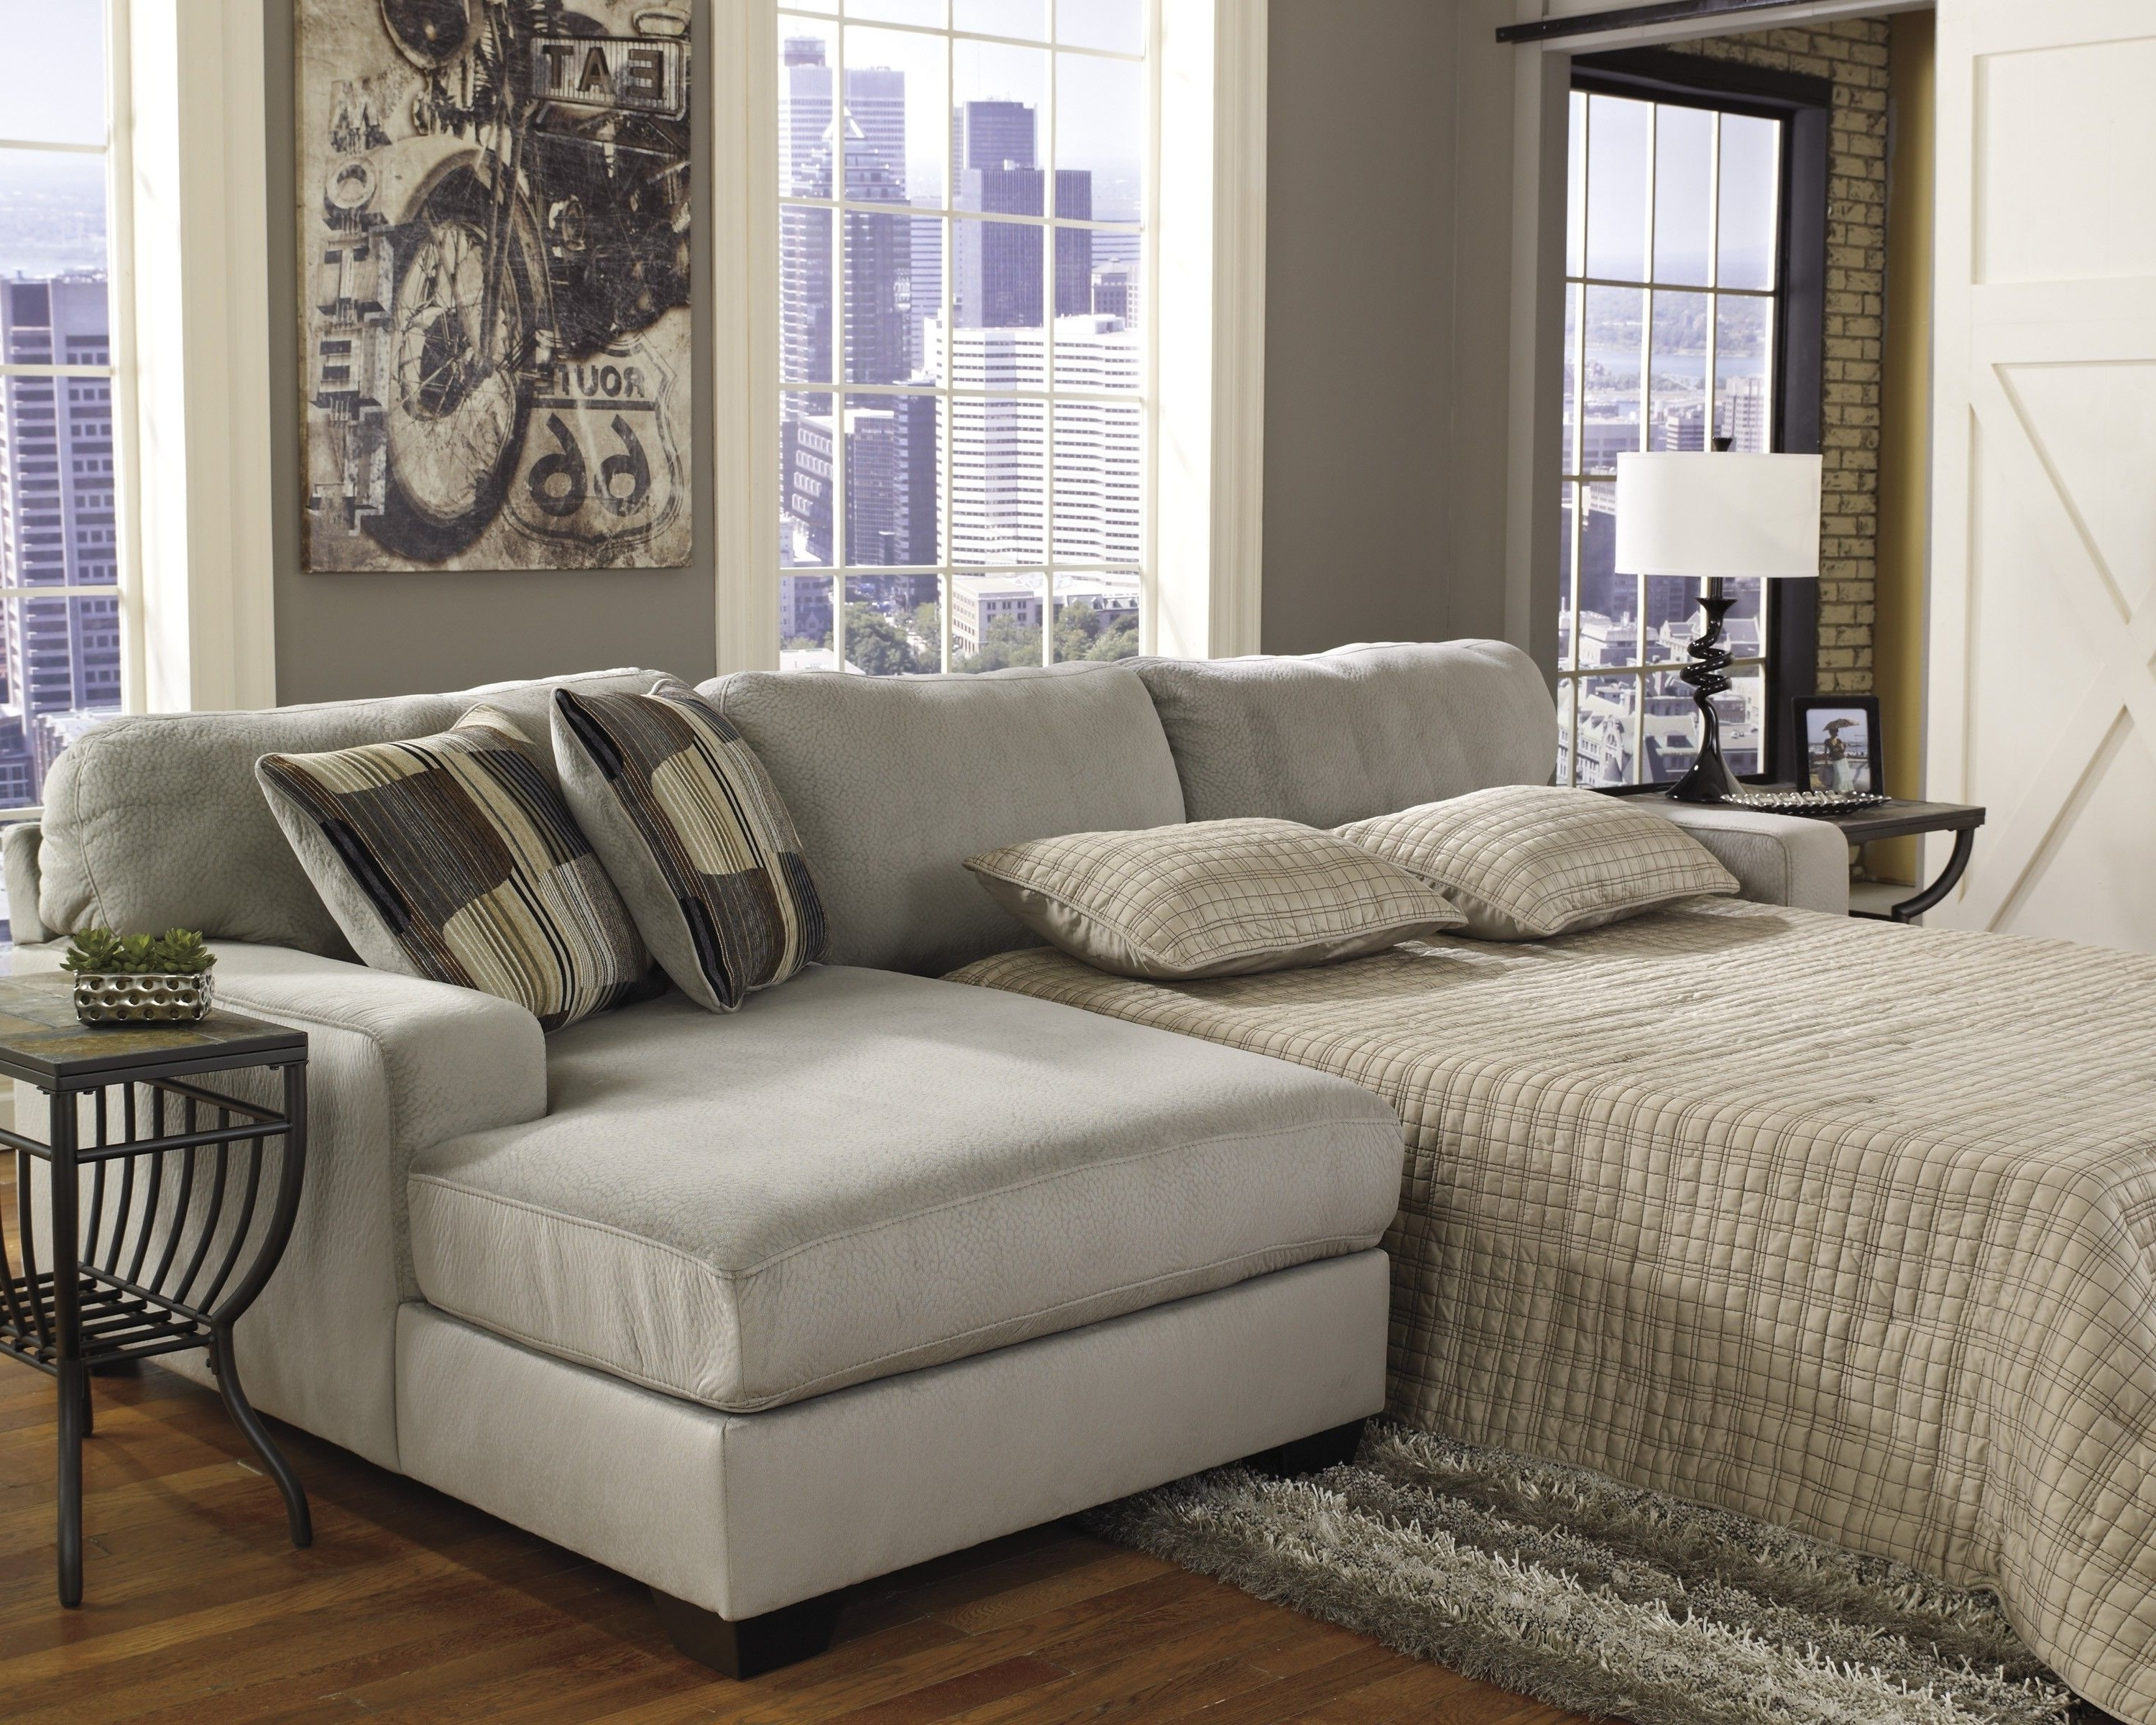 Sofa : Curved Couch Comfortable Couches For Small Spaces Narrow Pertaining To Widely Used Comfortable Sectional Sofas (View 17 of 20)